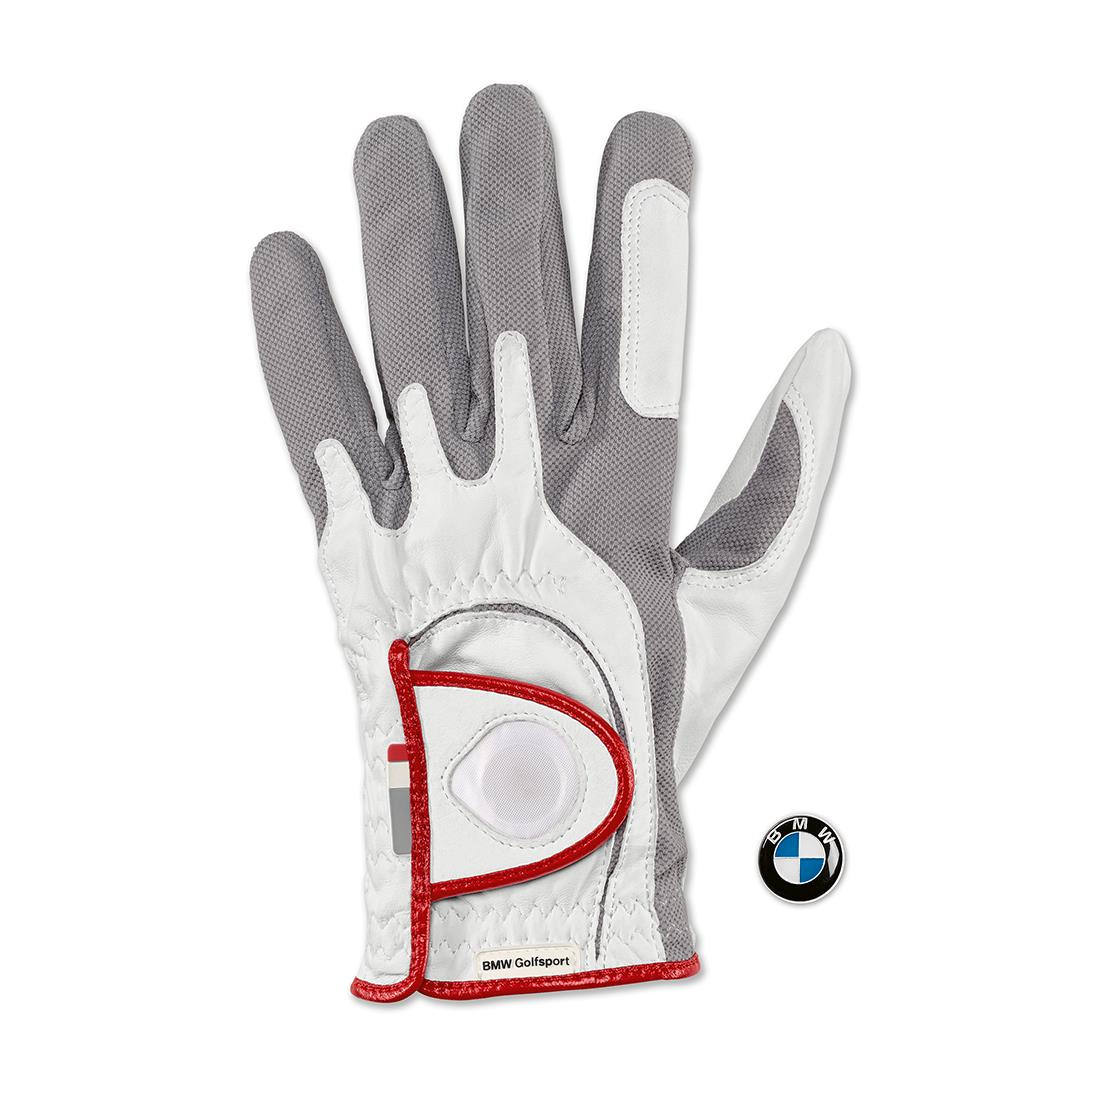 BMW Golfsport Glove left Men